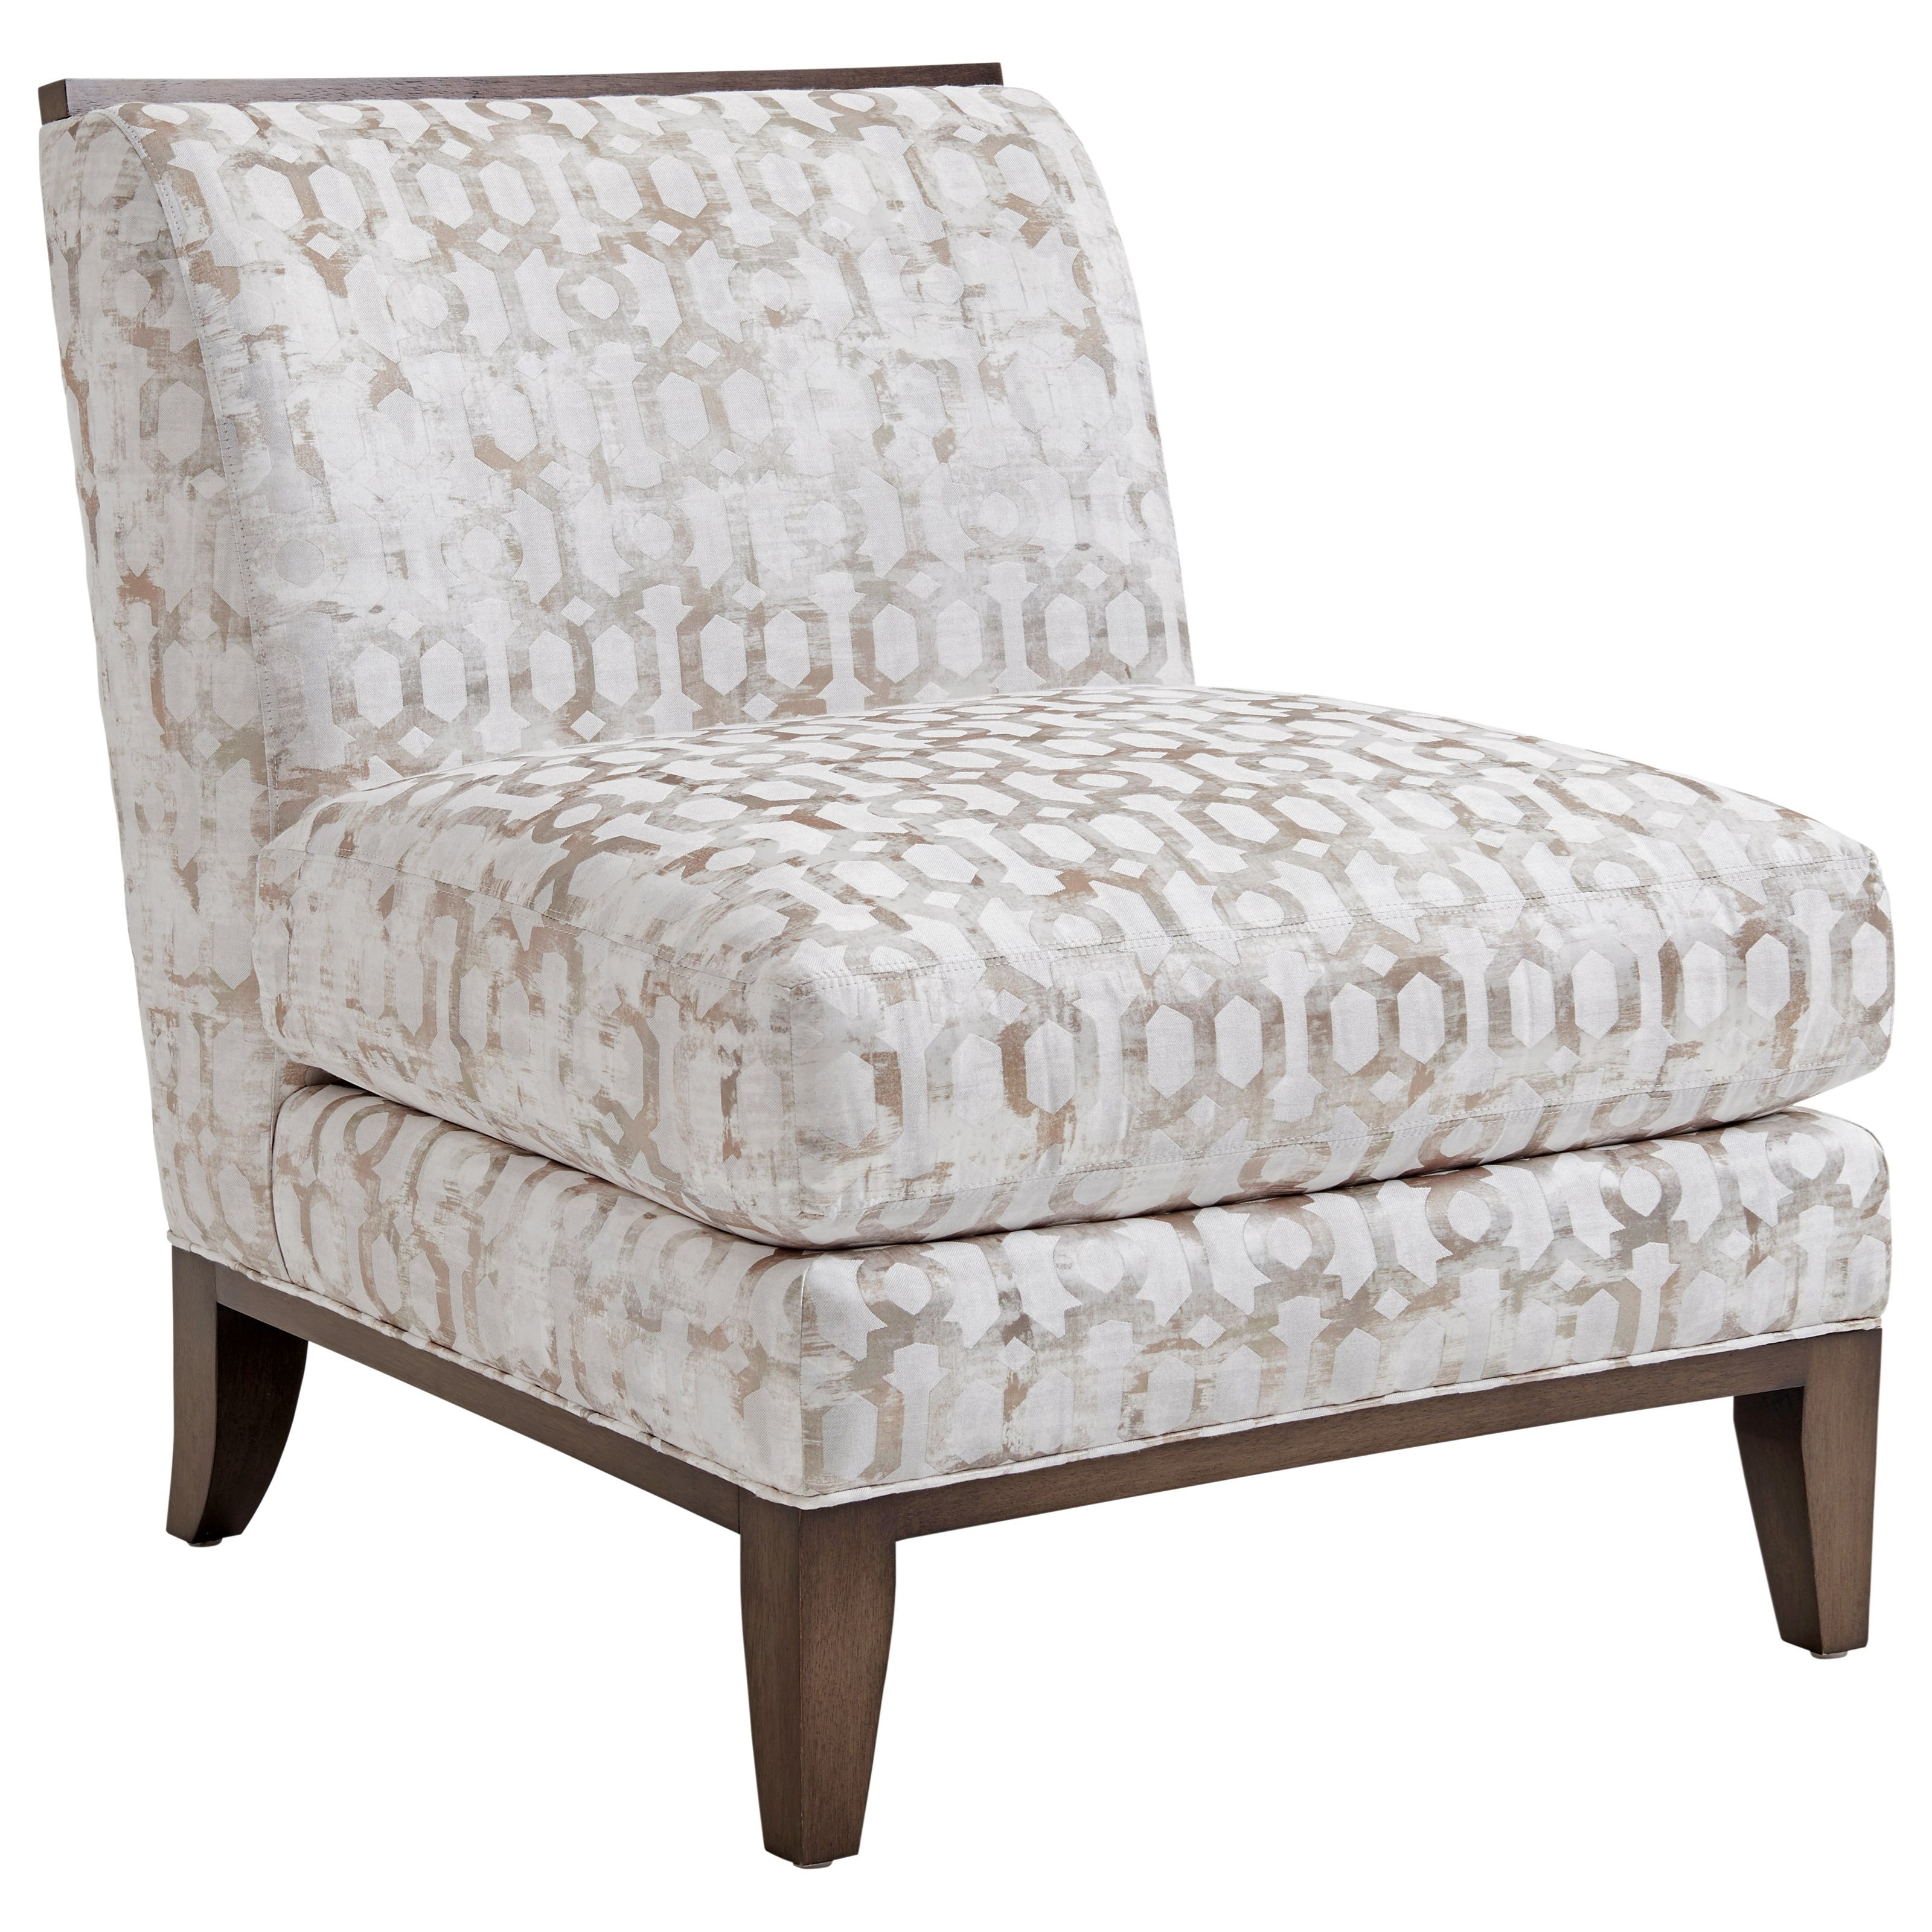 MacArthur Park Branford Armless Chair by Lexington at Jacksonville Furniture Mart